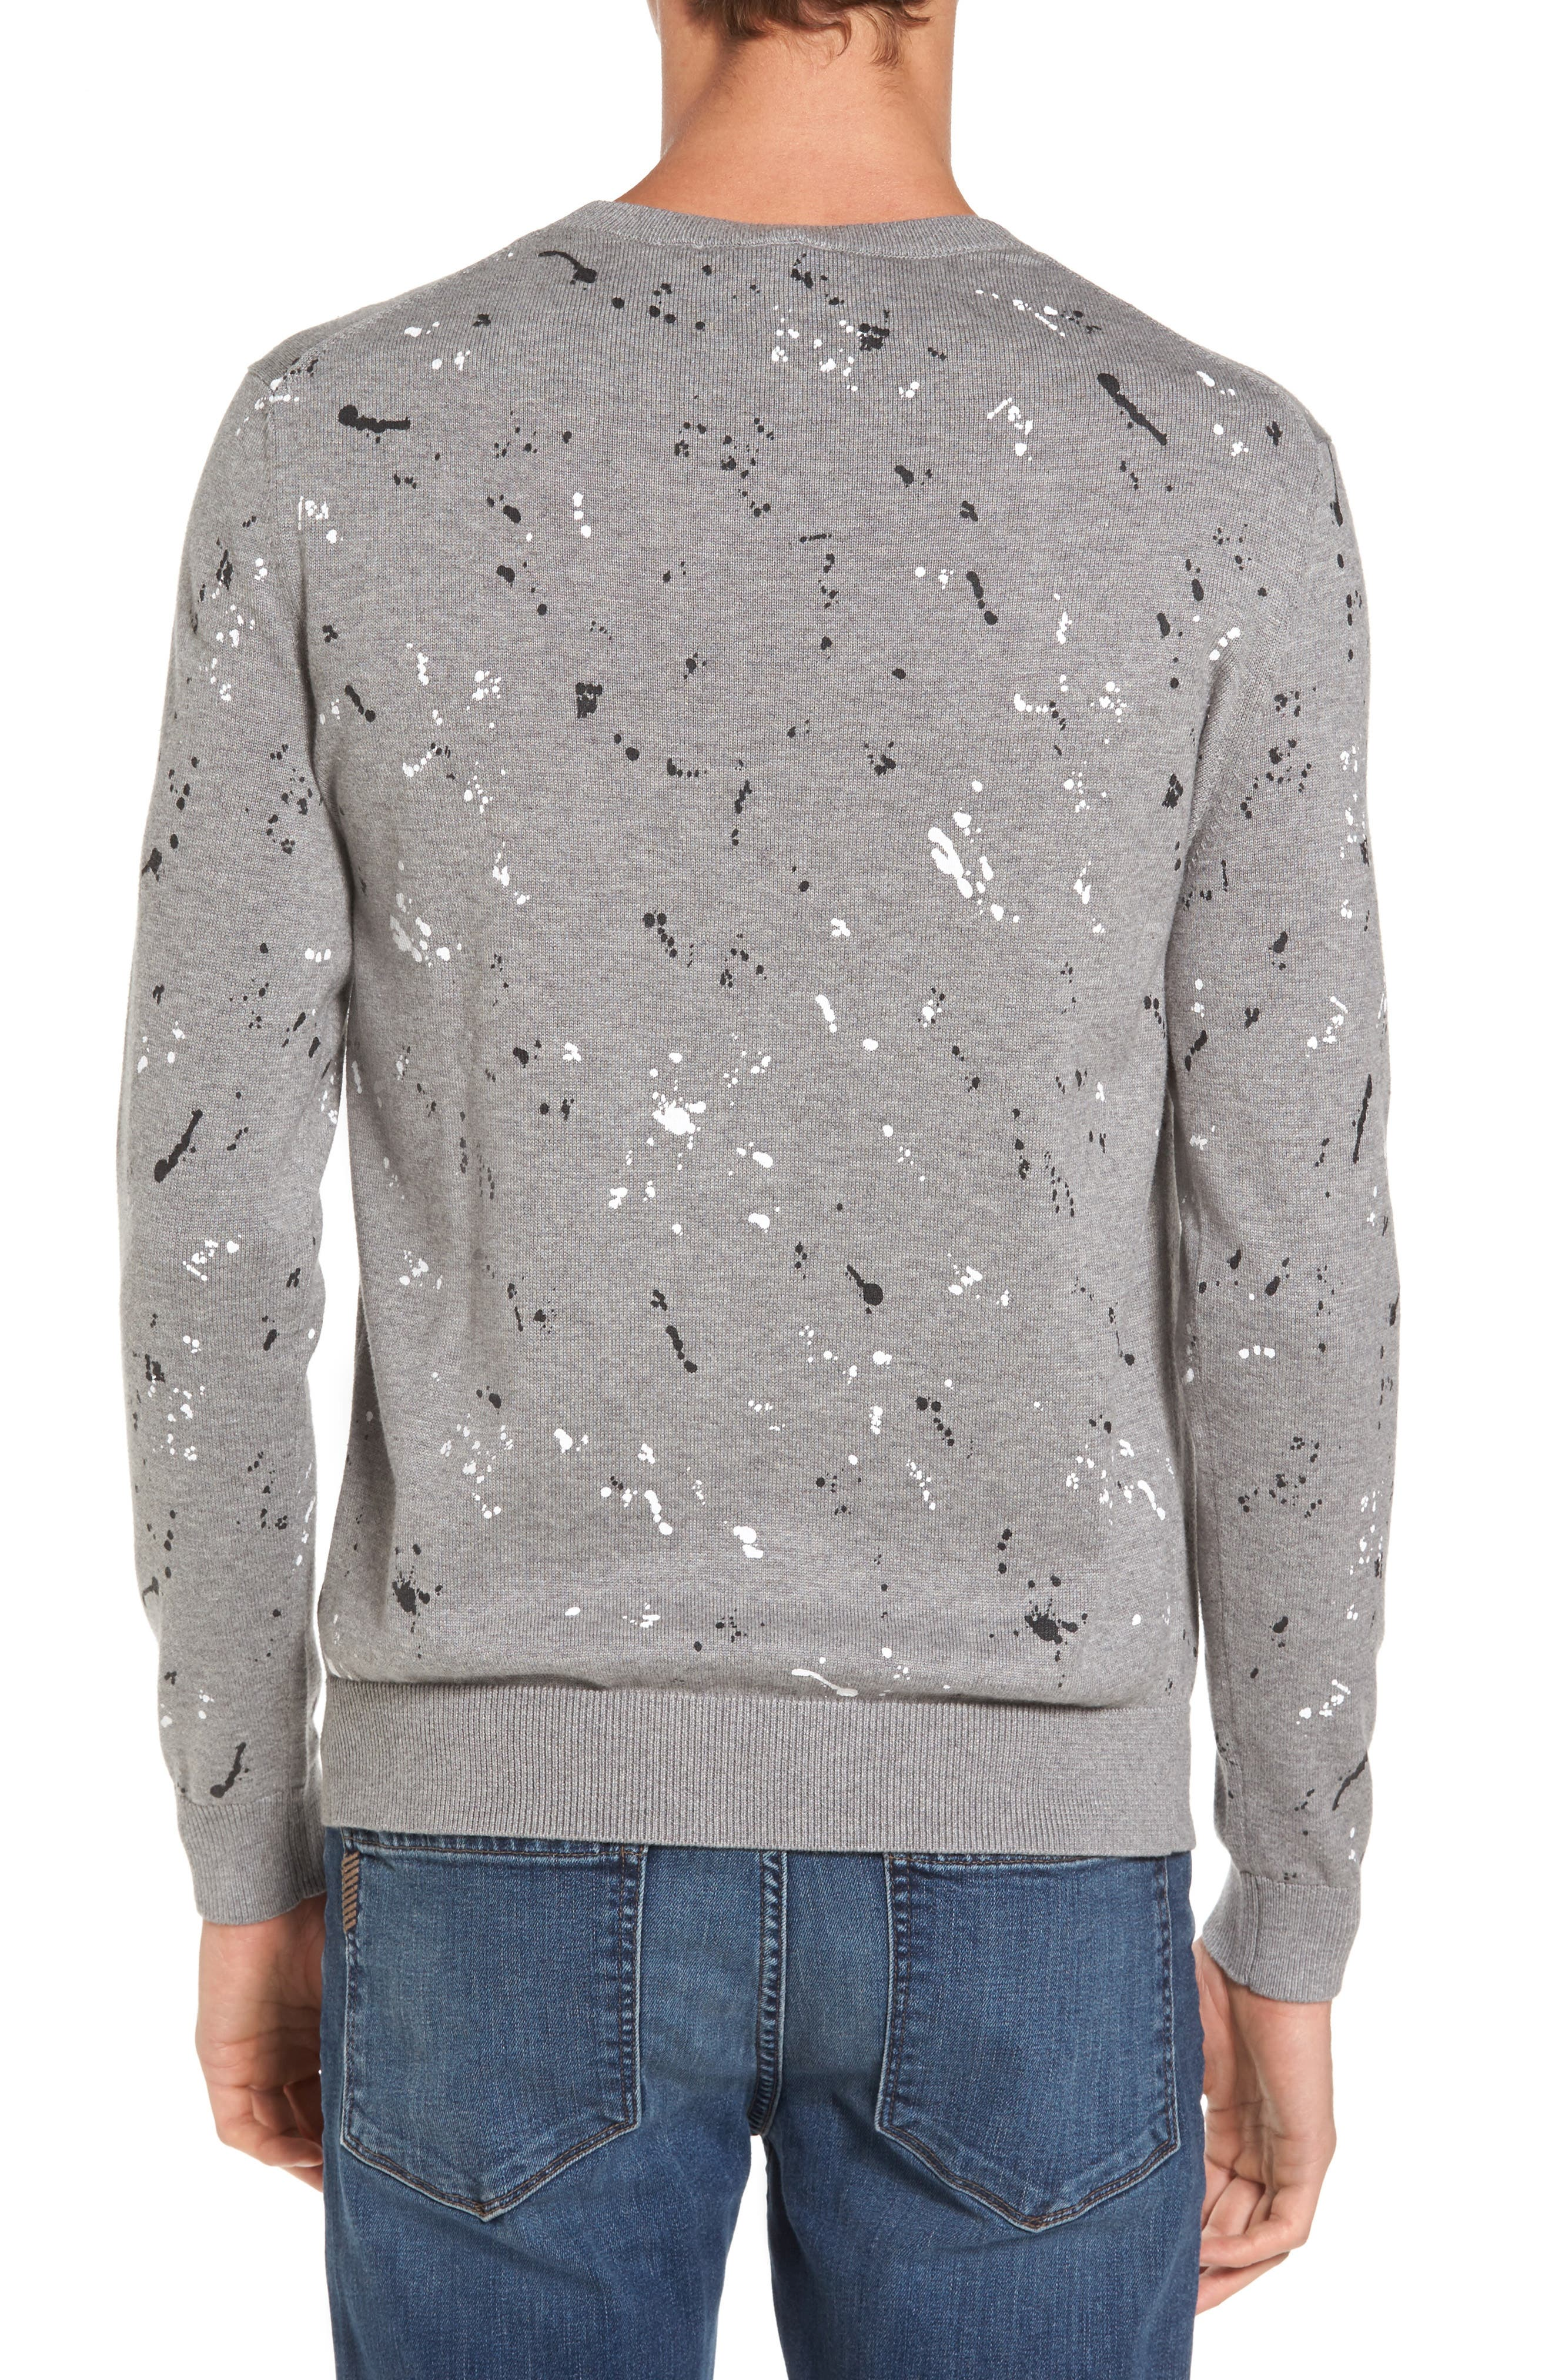 Splatter Sweater,                             Alternate thumbnail 2, color,                             Sru Palladium Mouline